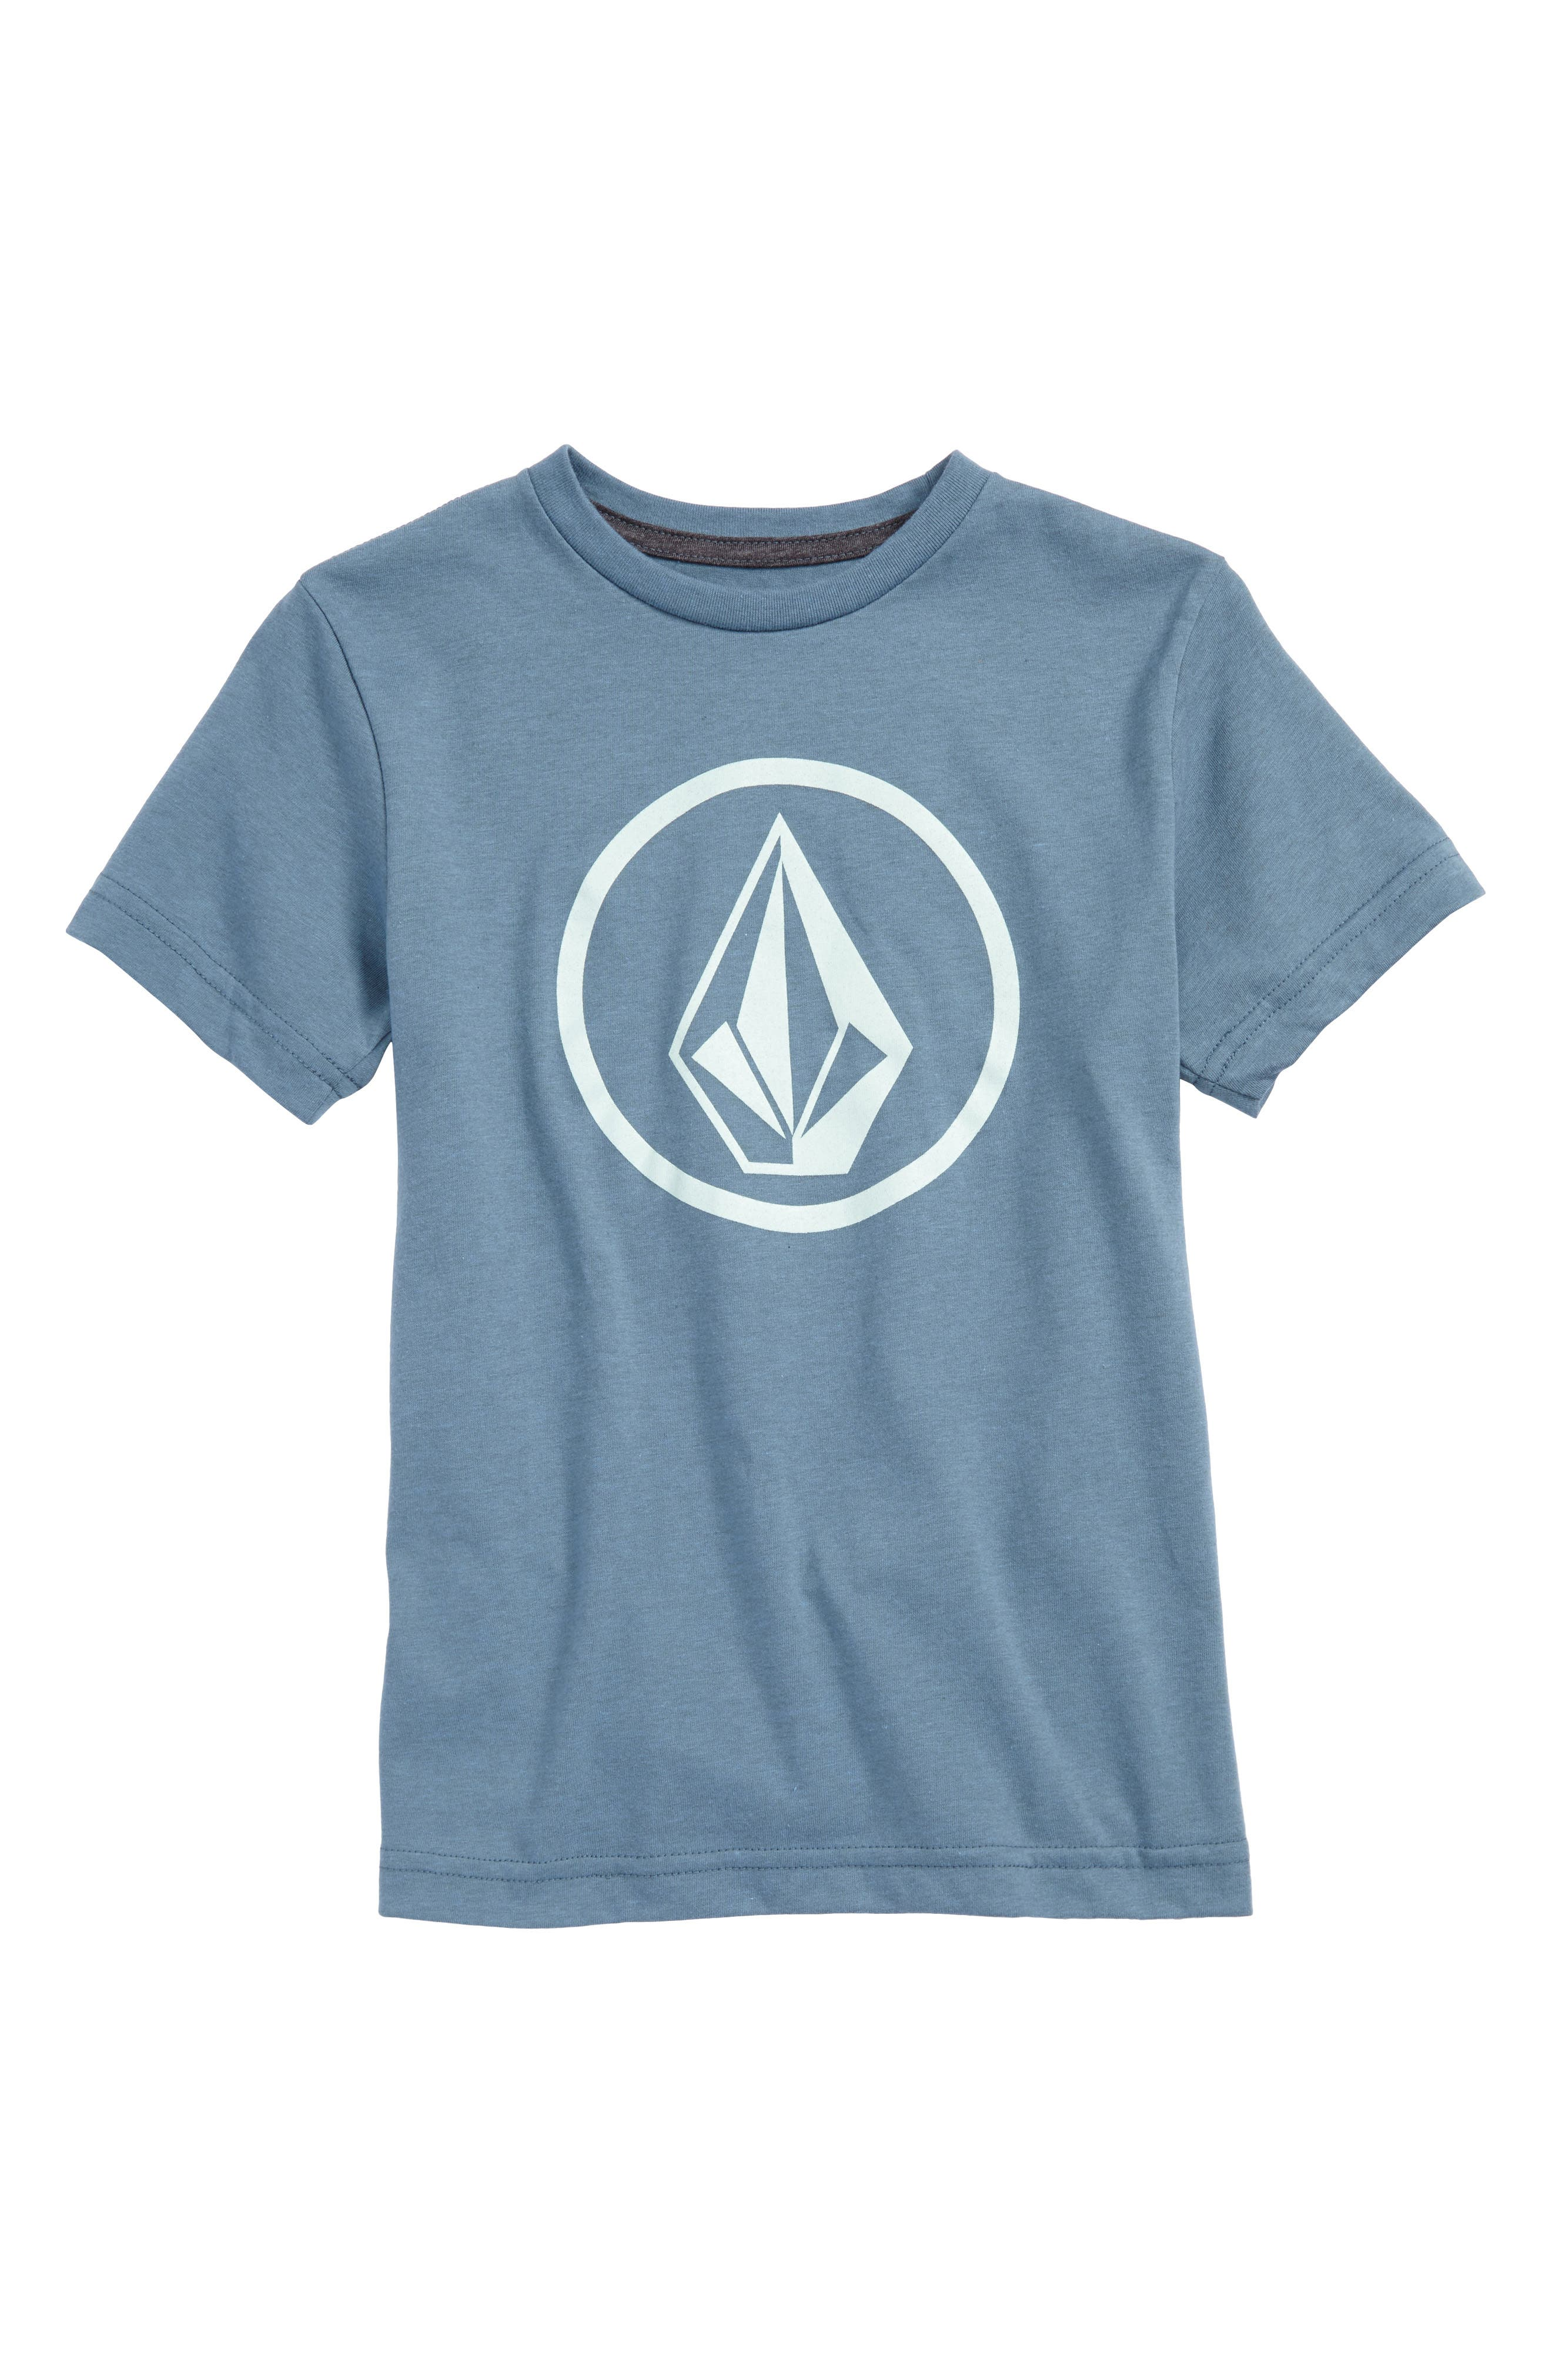 Main Image - Volcom Circle Stone Logo Graphic T-Shirt (Toddler Boys & Little Boys)